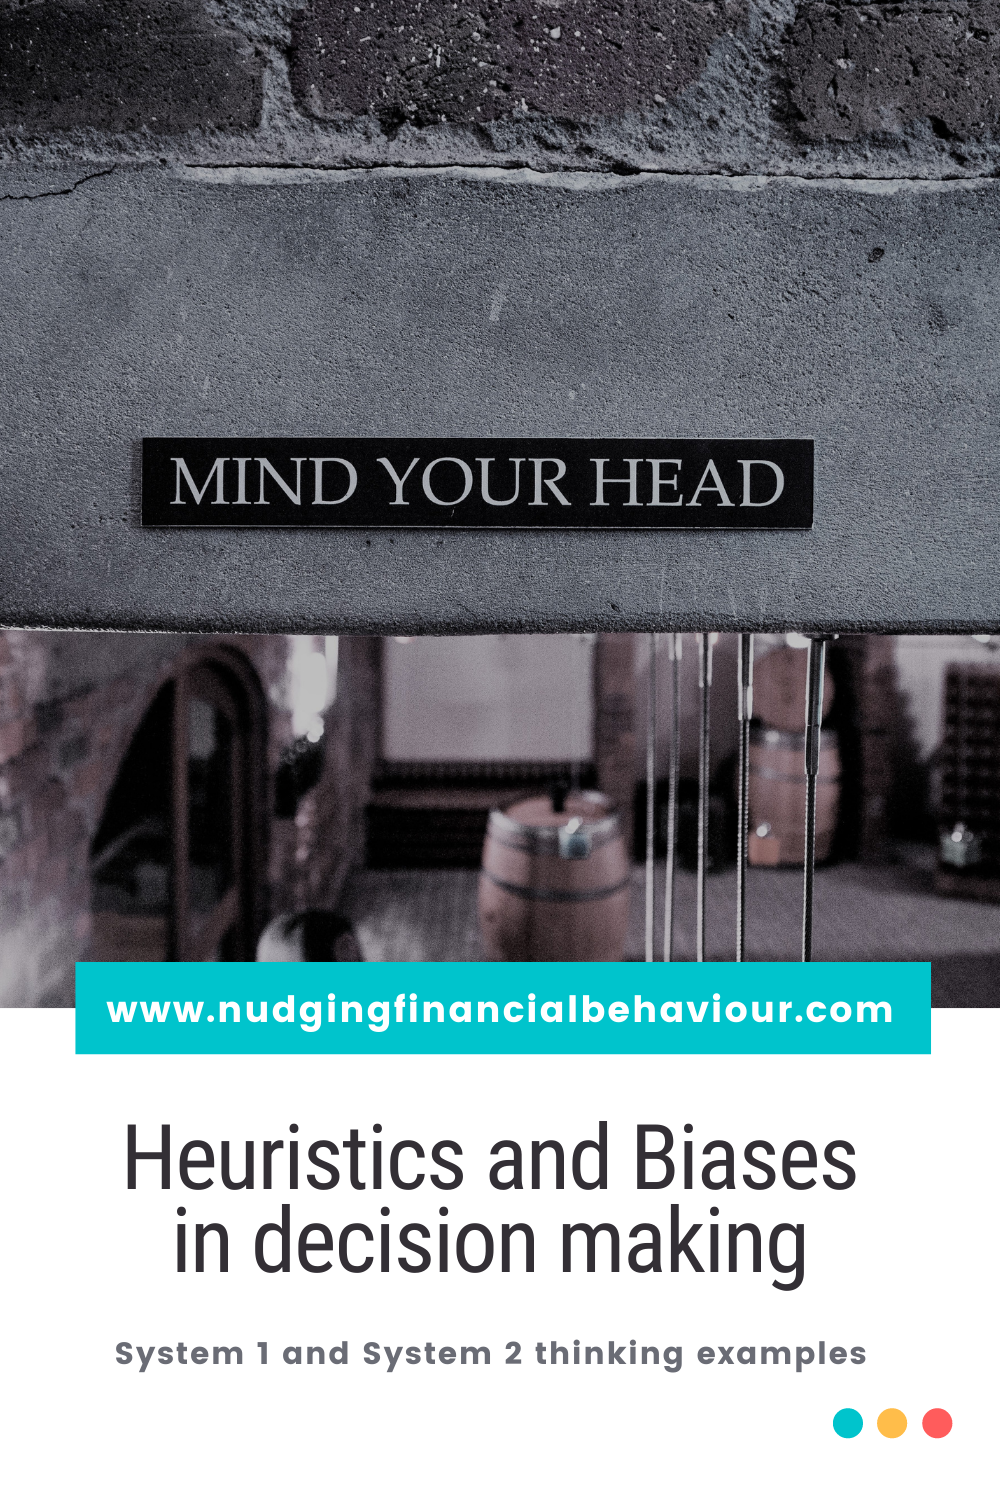 Heuristics and biases in decision making